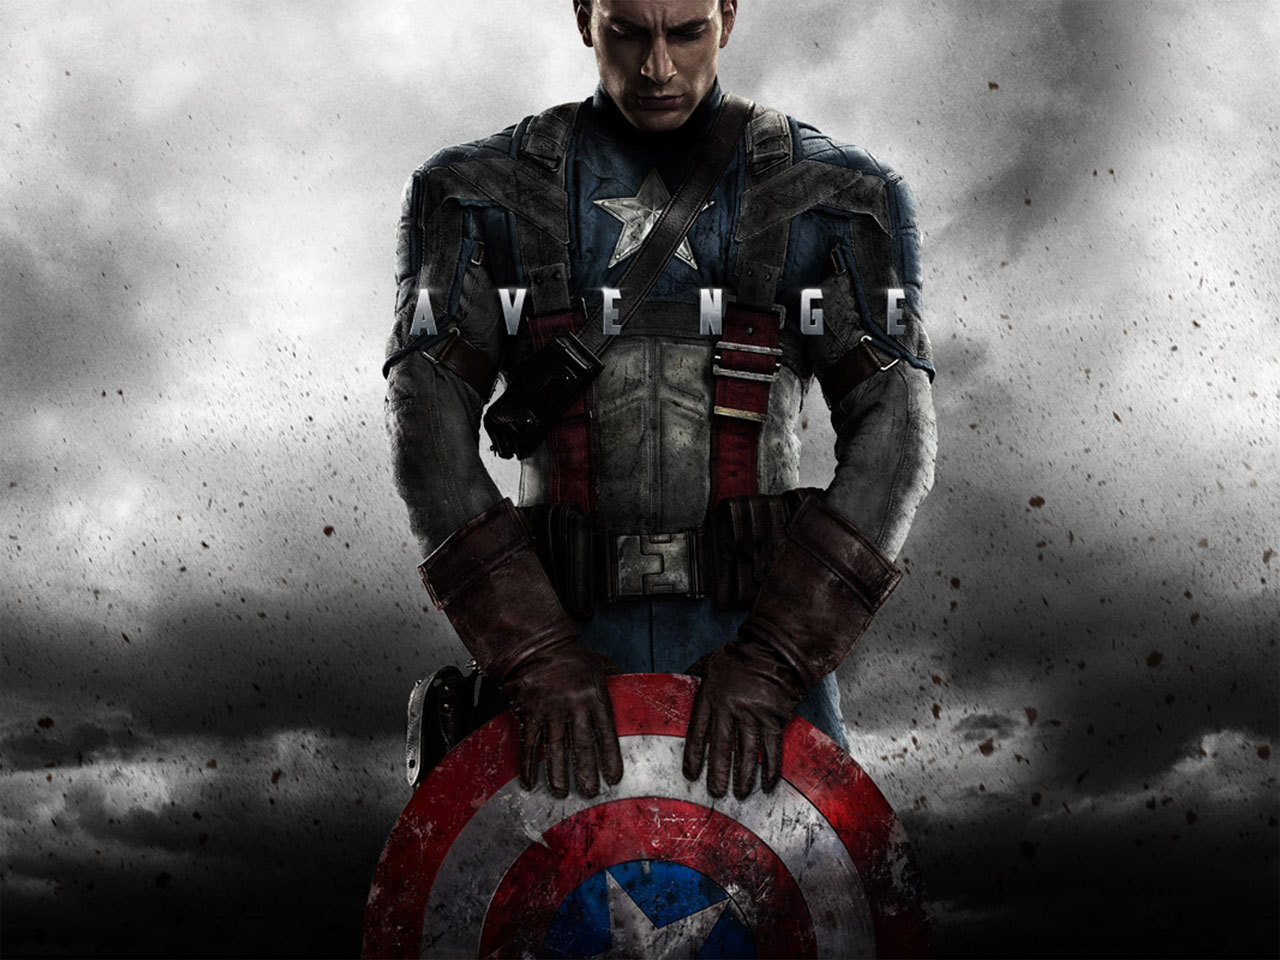 Marvel Comics Images Captain America Hd Wallpaper And Background